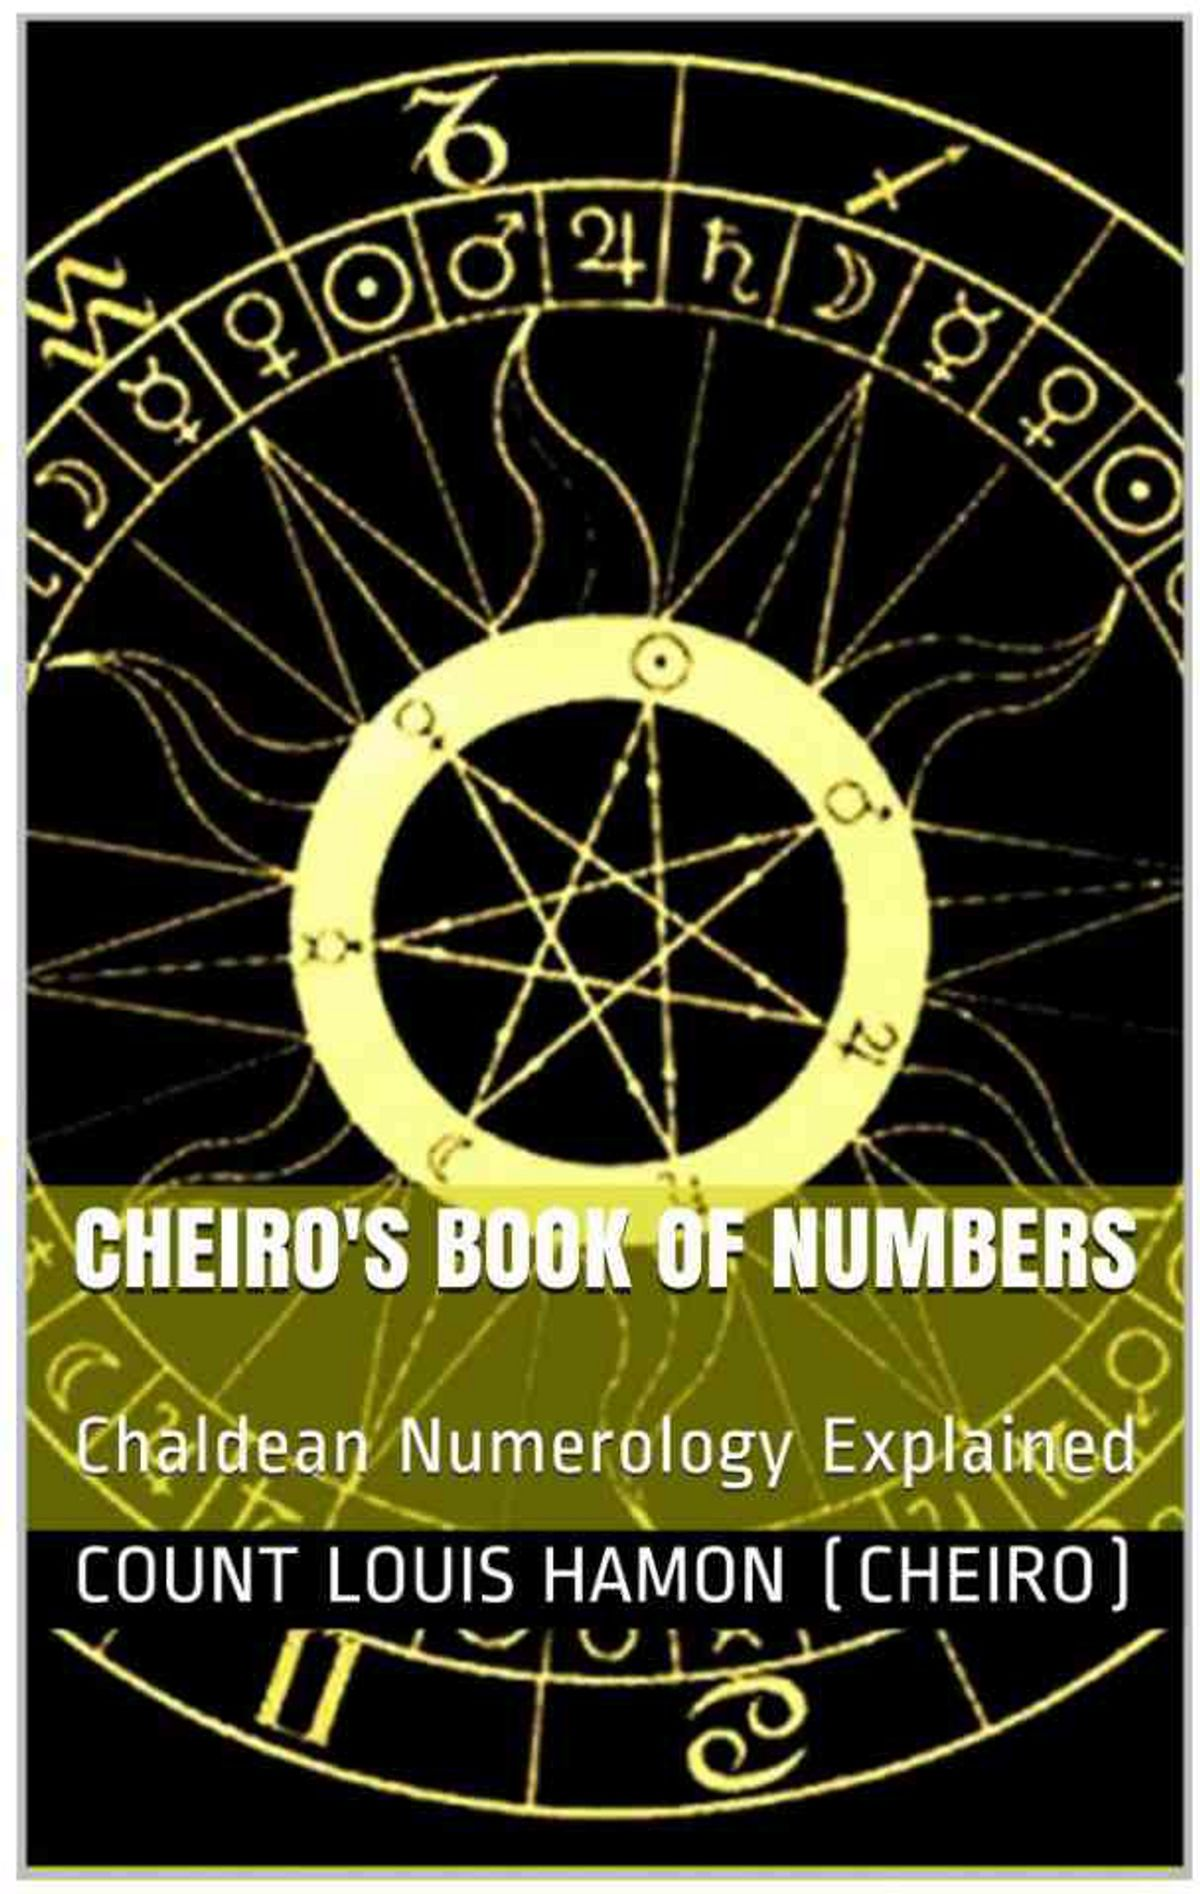 127-01-cheiro-s-book-of-numbers